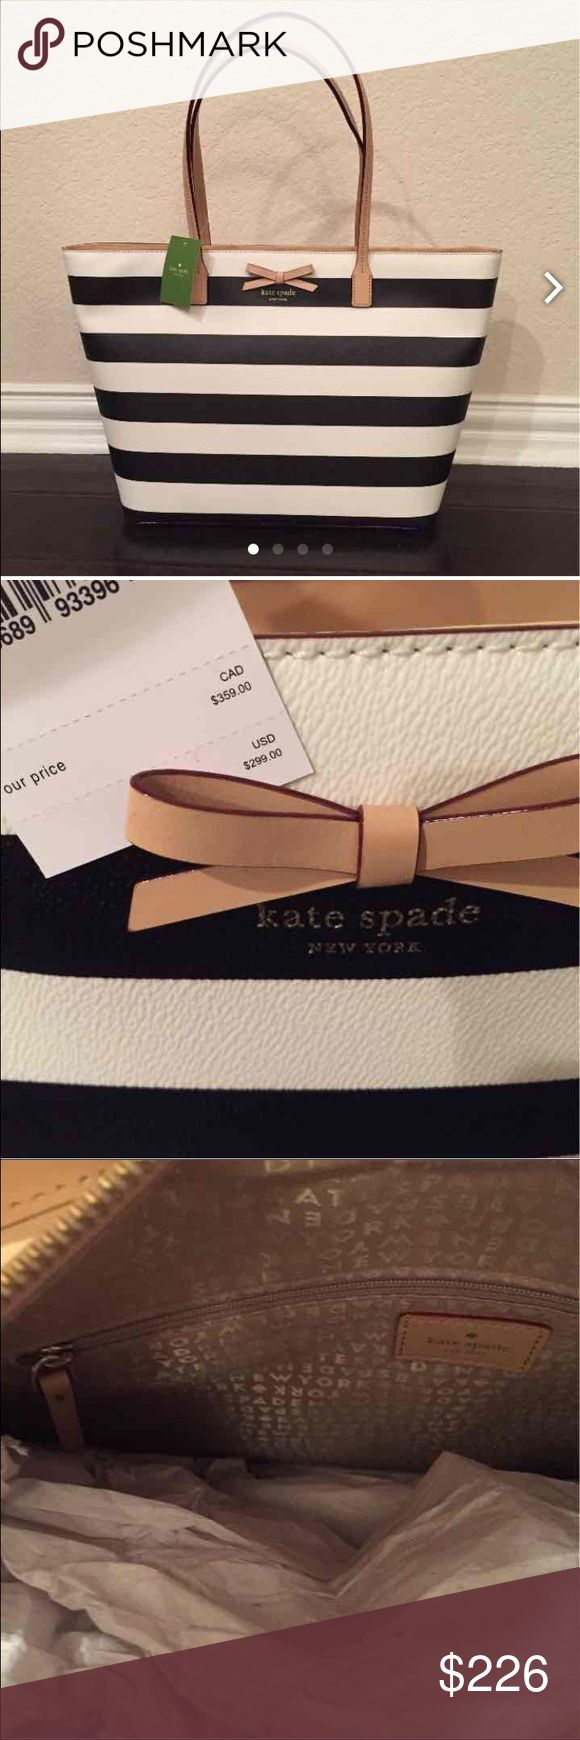 Kate Spade designer handbag black white tote Black and white stripe, nude leather detail, Kate Spade quality brand, new with tags, comes with store bag, perfect for everything, classic Kate Spade Bags Totes